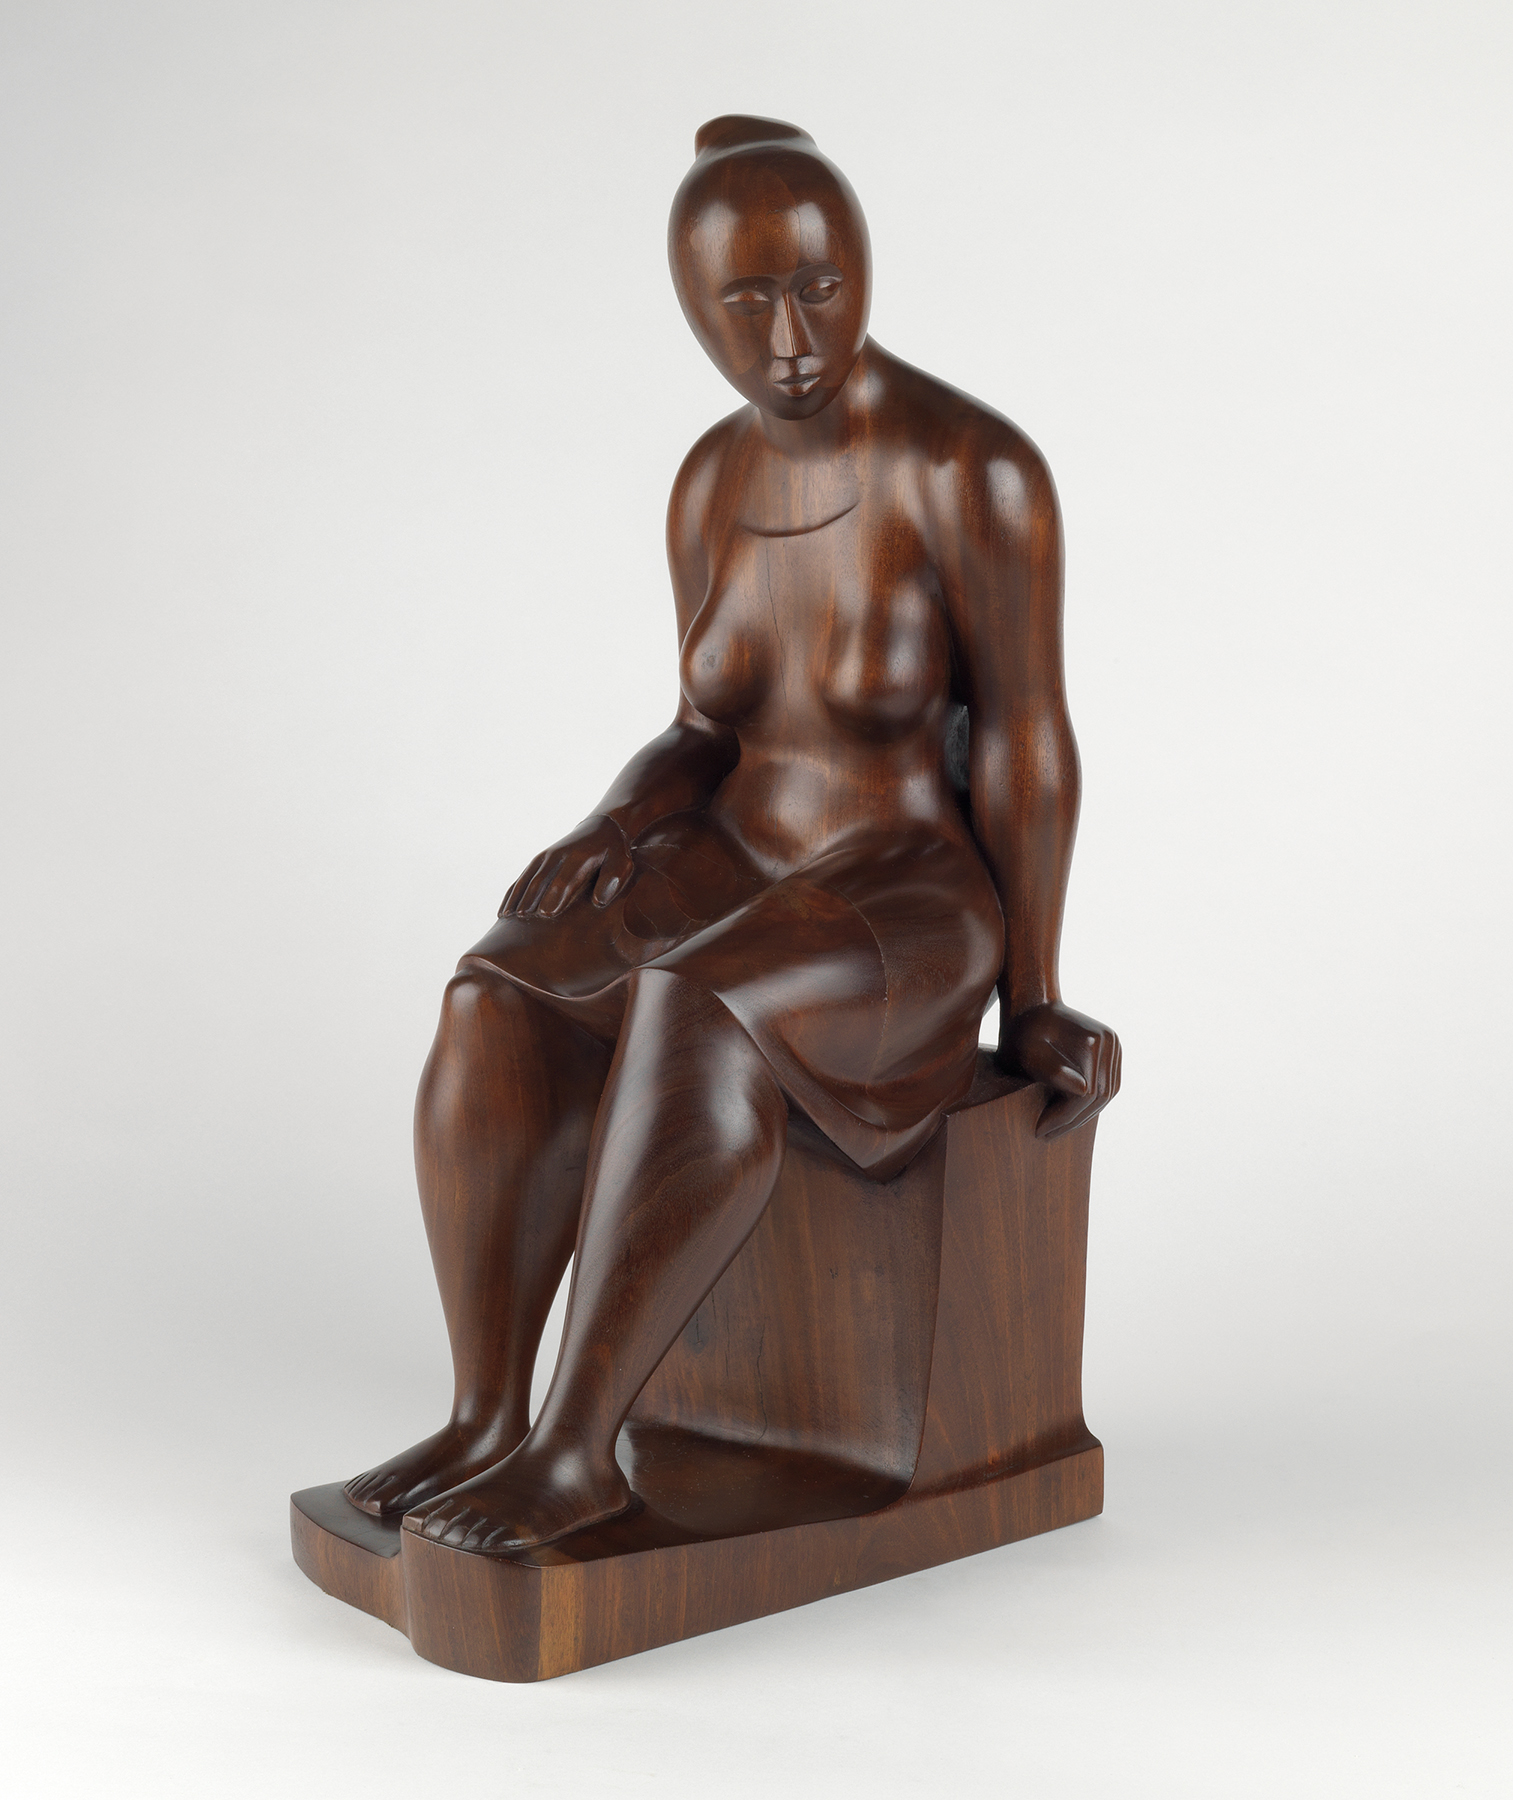 Elizabeth Catlett Sculpture Sells for $389,000 at New York Auction, New Record for the Trailblazing Artist -